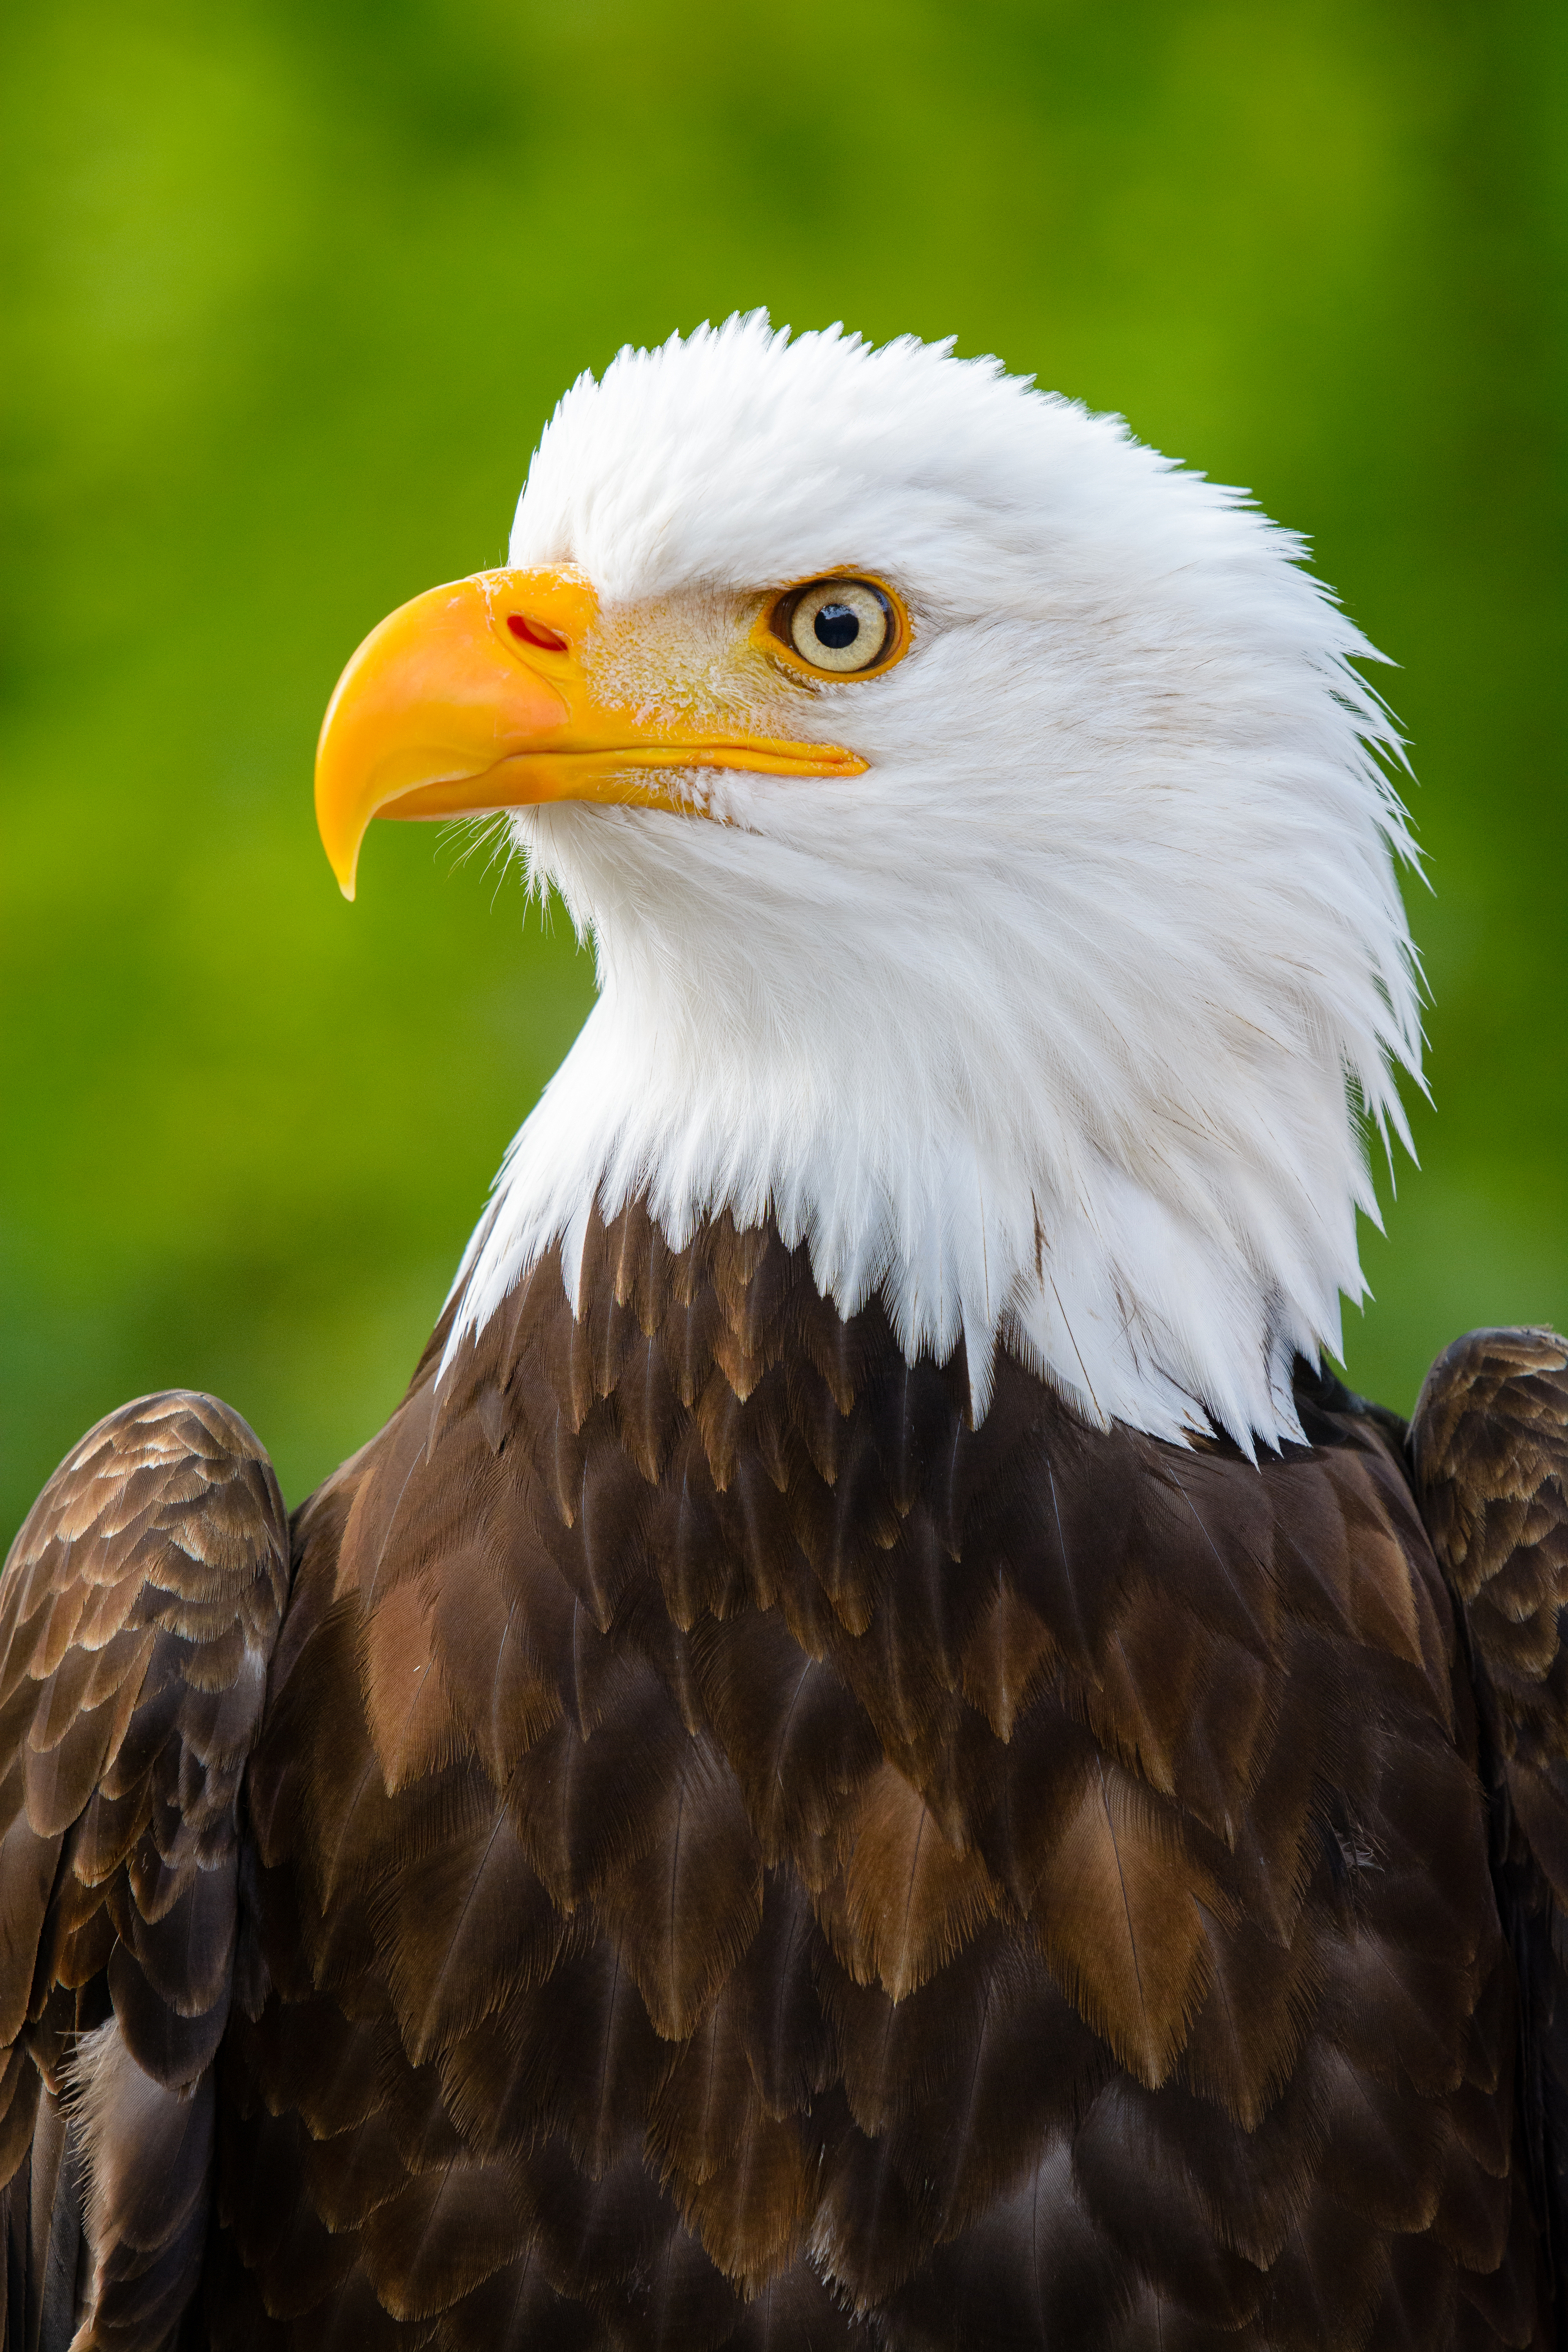 108785 download wallpaper Animals, Eagle, Bird, Predator, Sight, Opinion, Beak, Profile screensavers and pictures for free